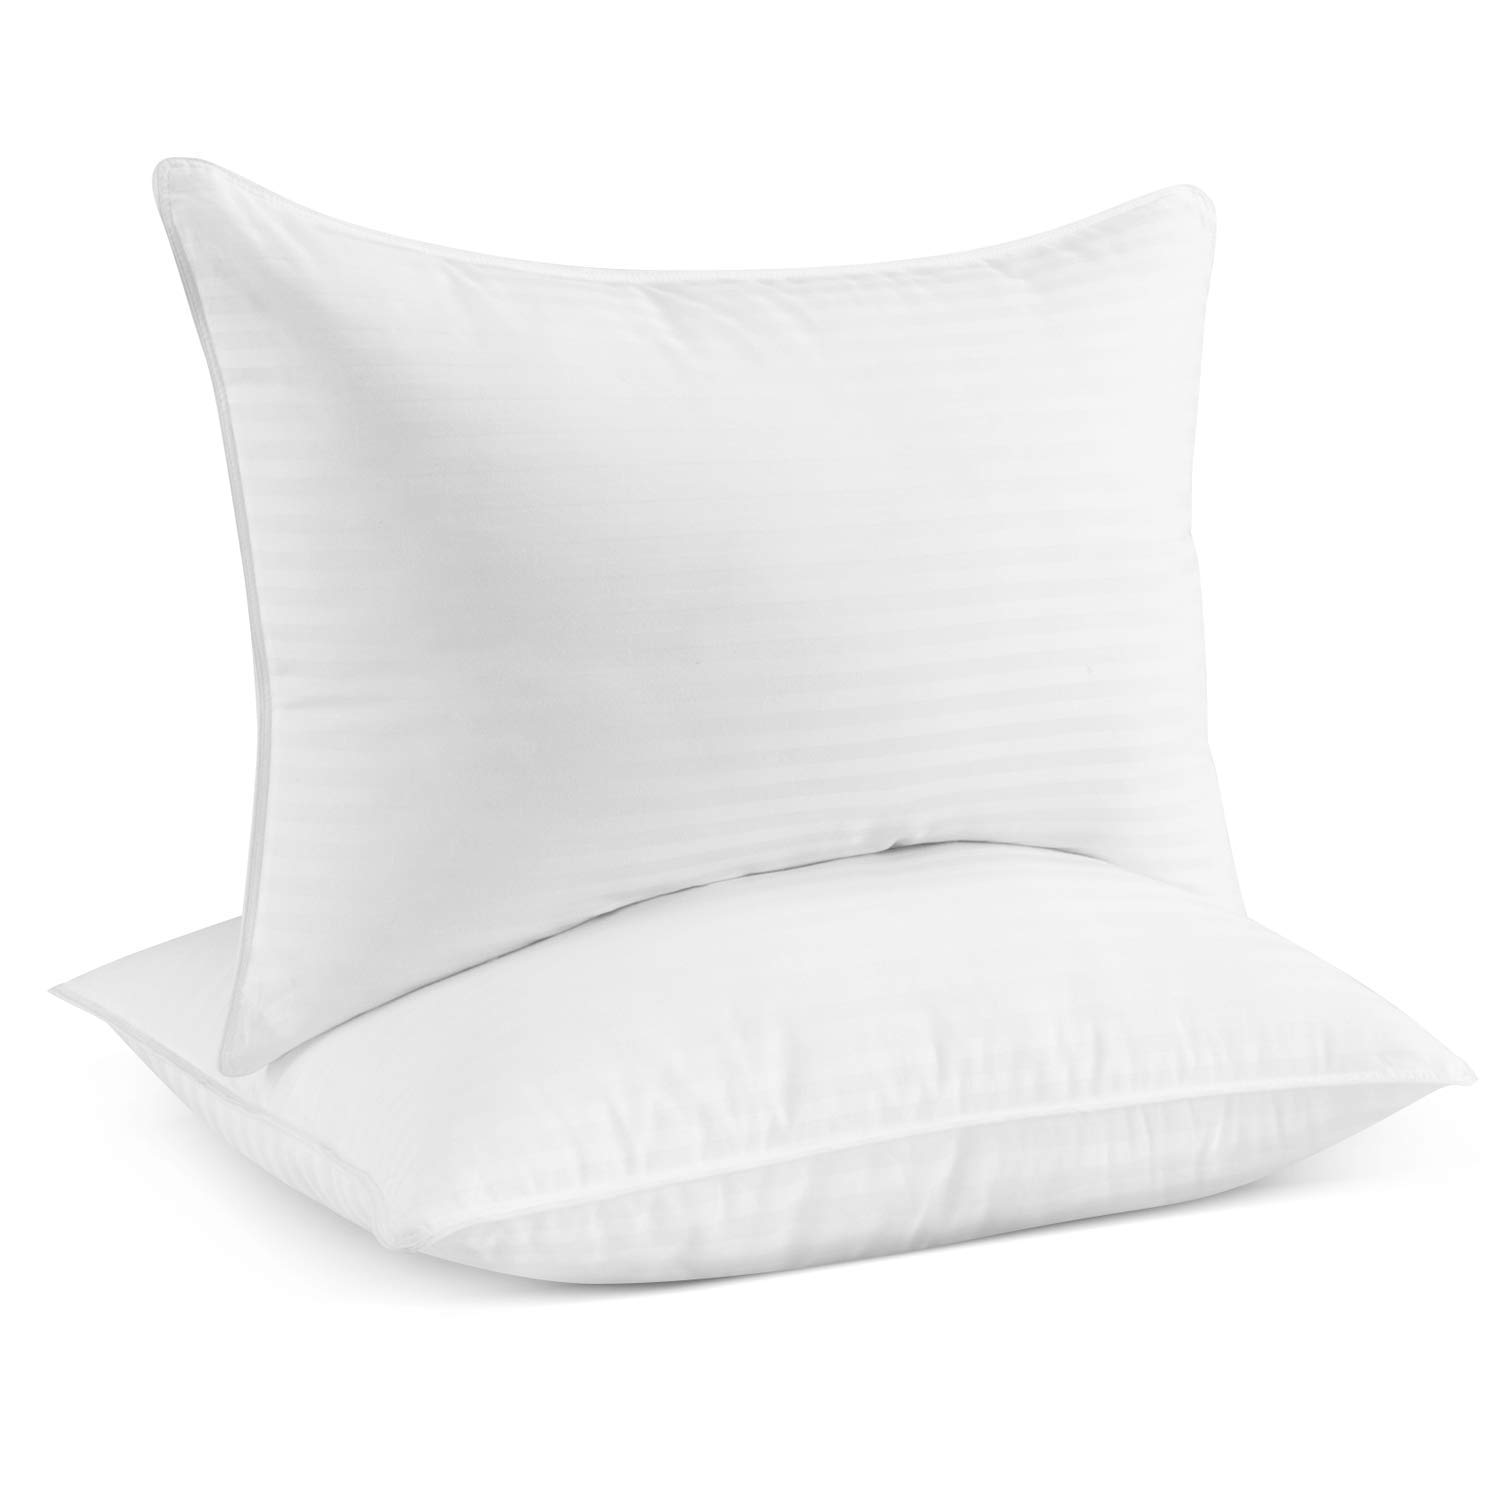 better dreams hotel quality pillows reviews